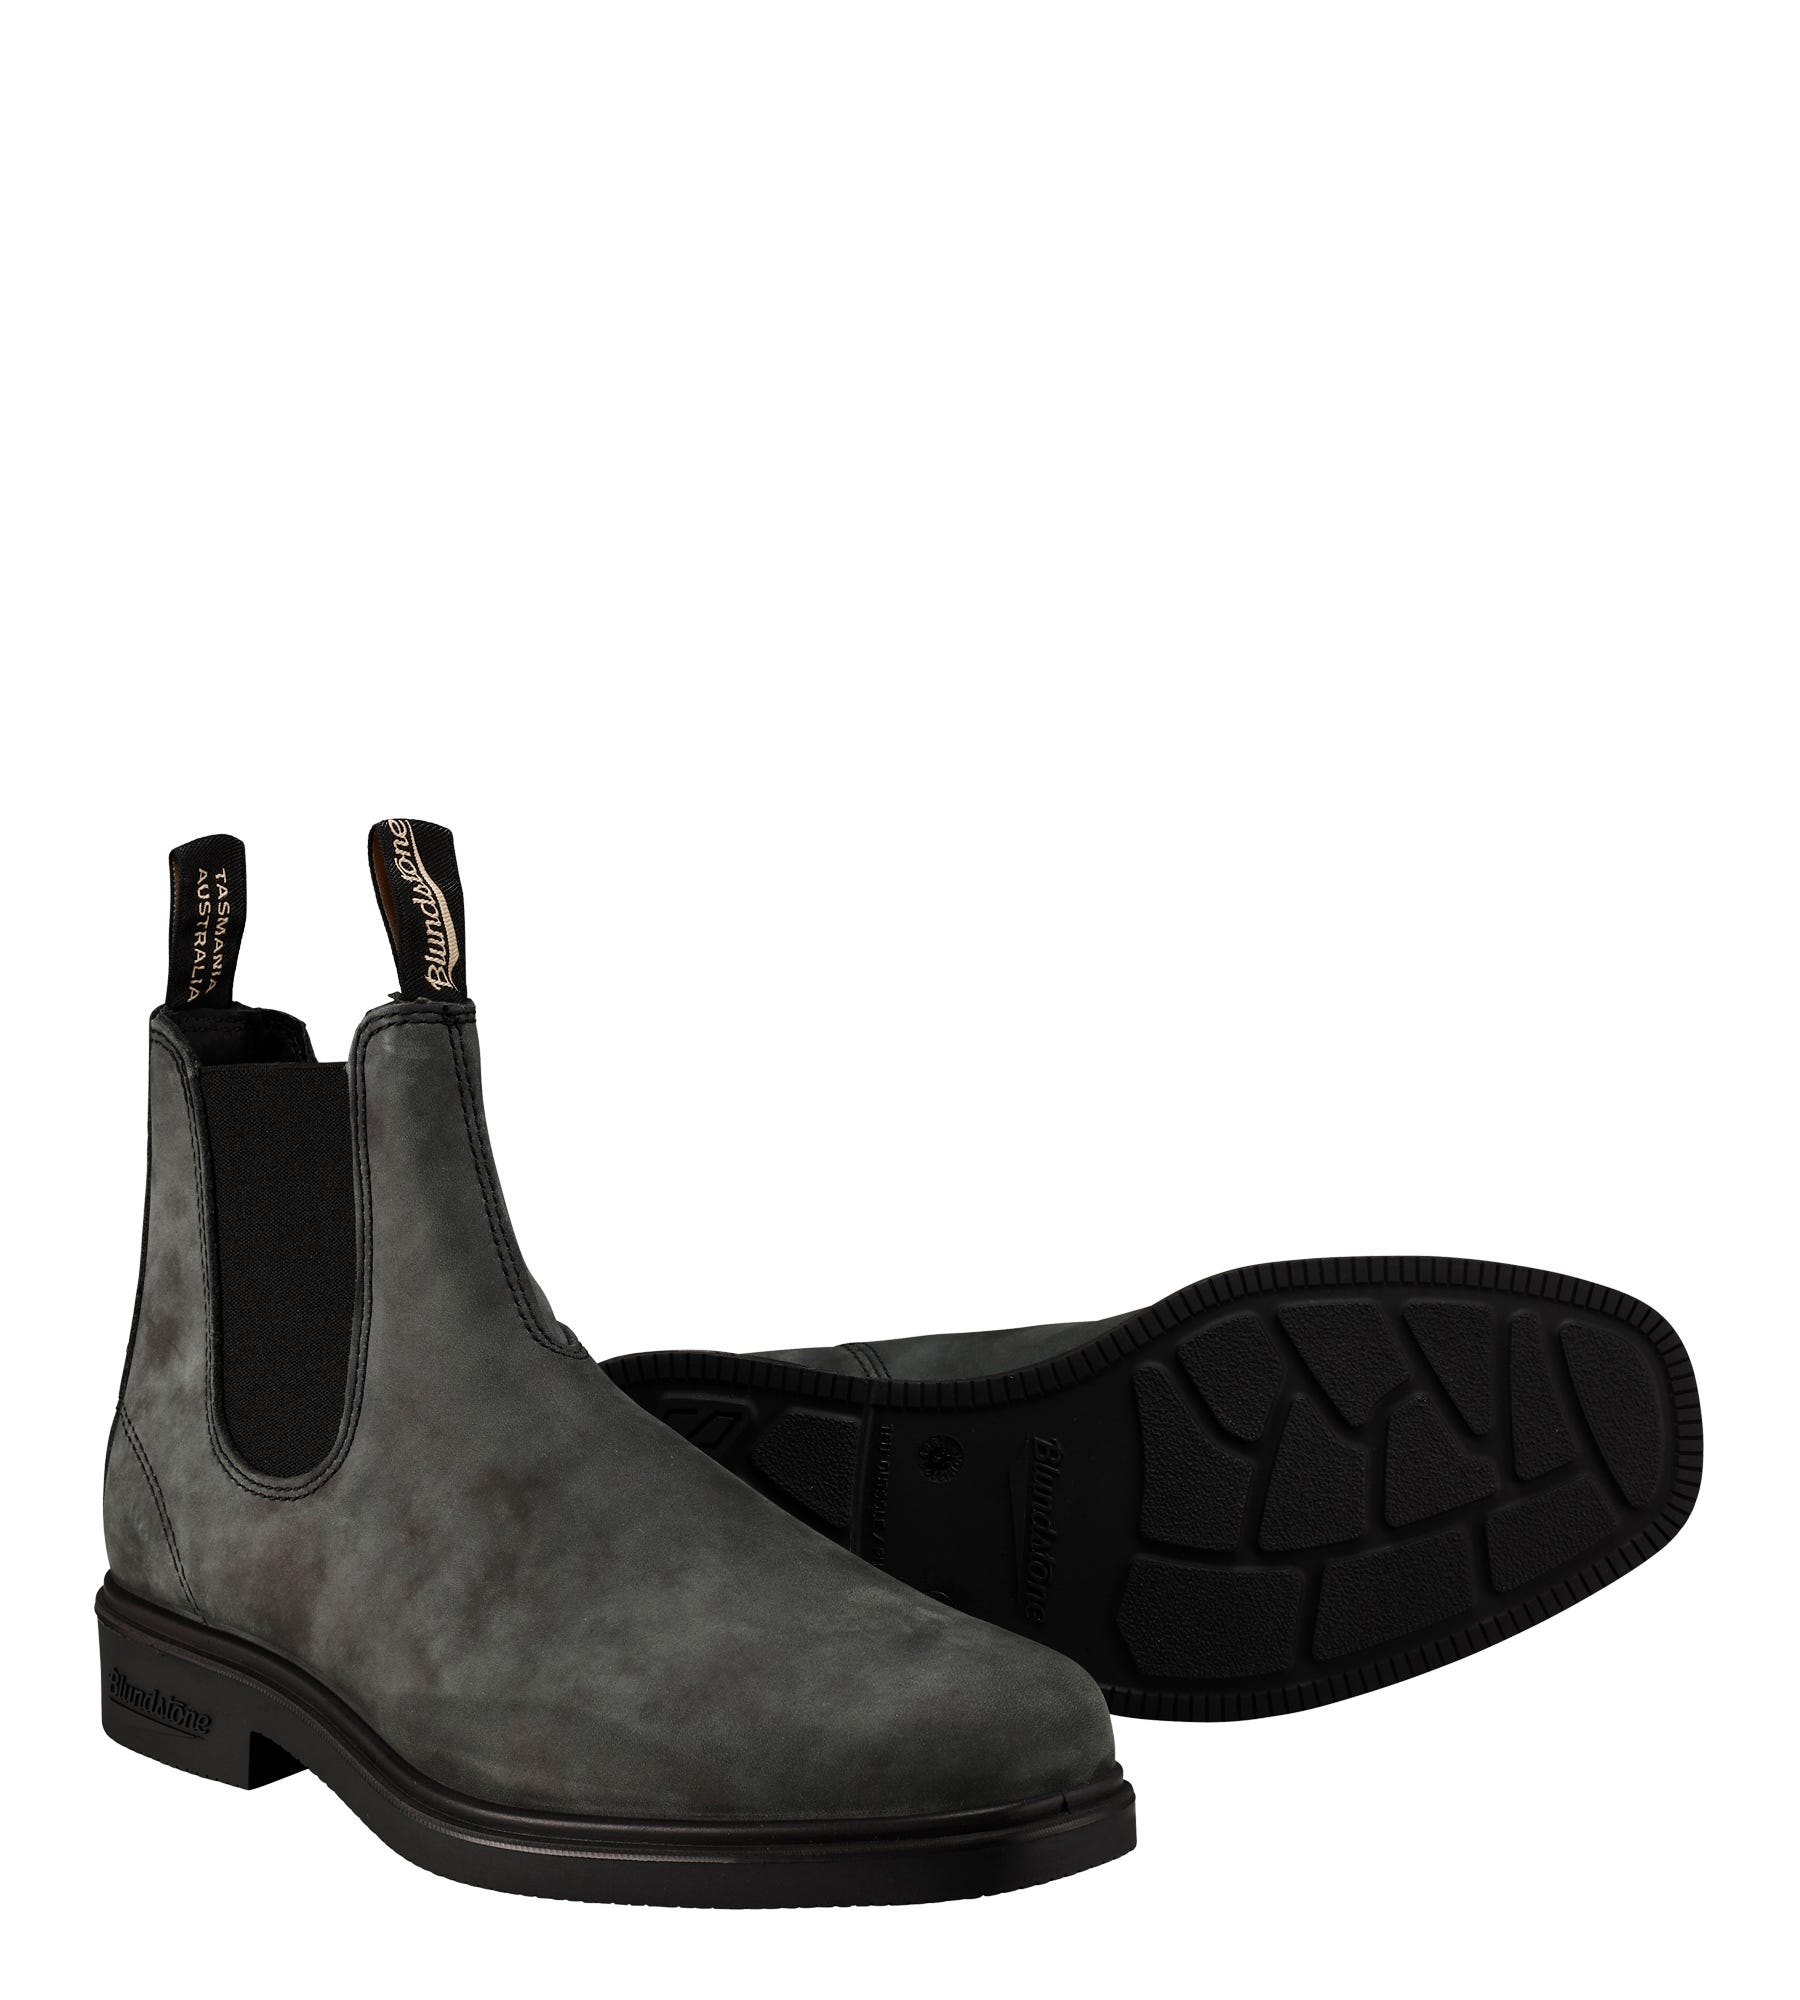 An image of Blundstone Boots #1308-43 (9)